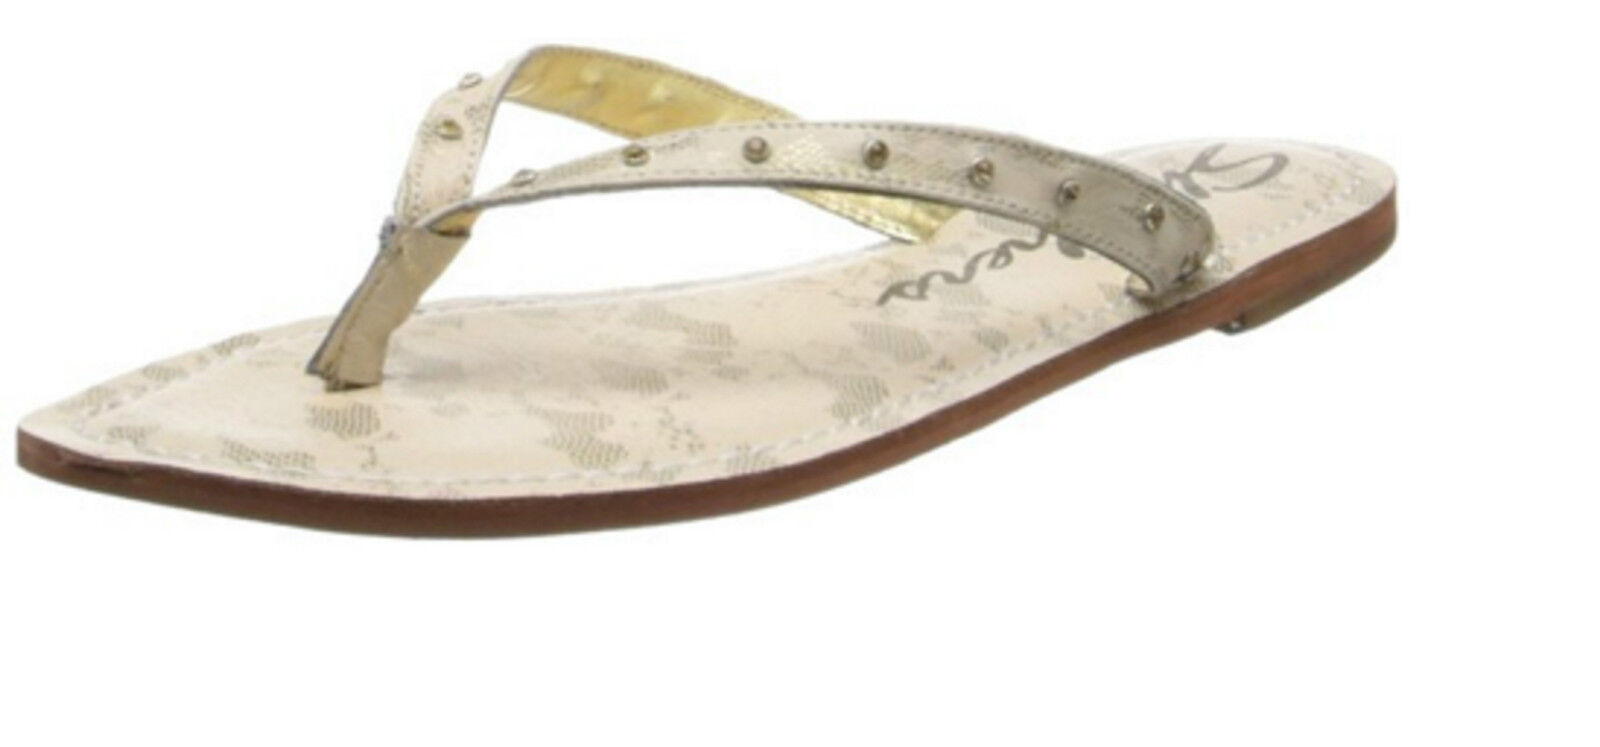 Skechers Cali Women Bare Foot Flip Flop Natural Color Sandal Sleeper Casual